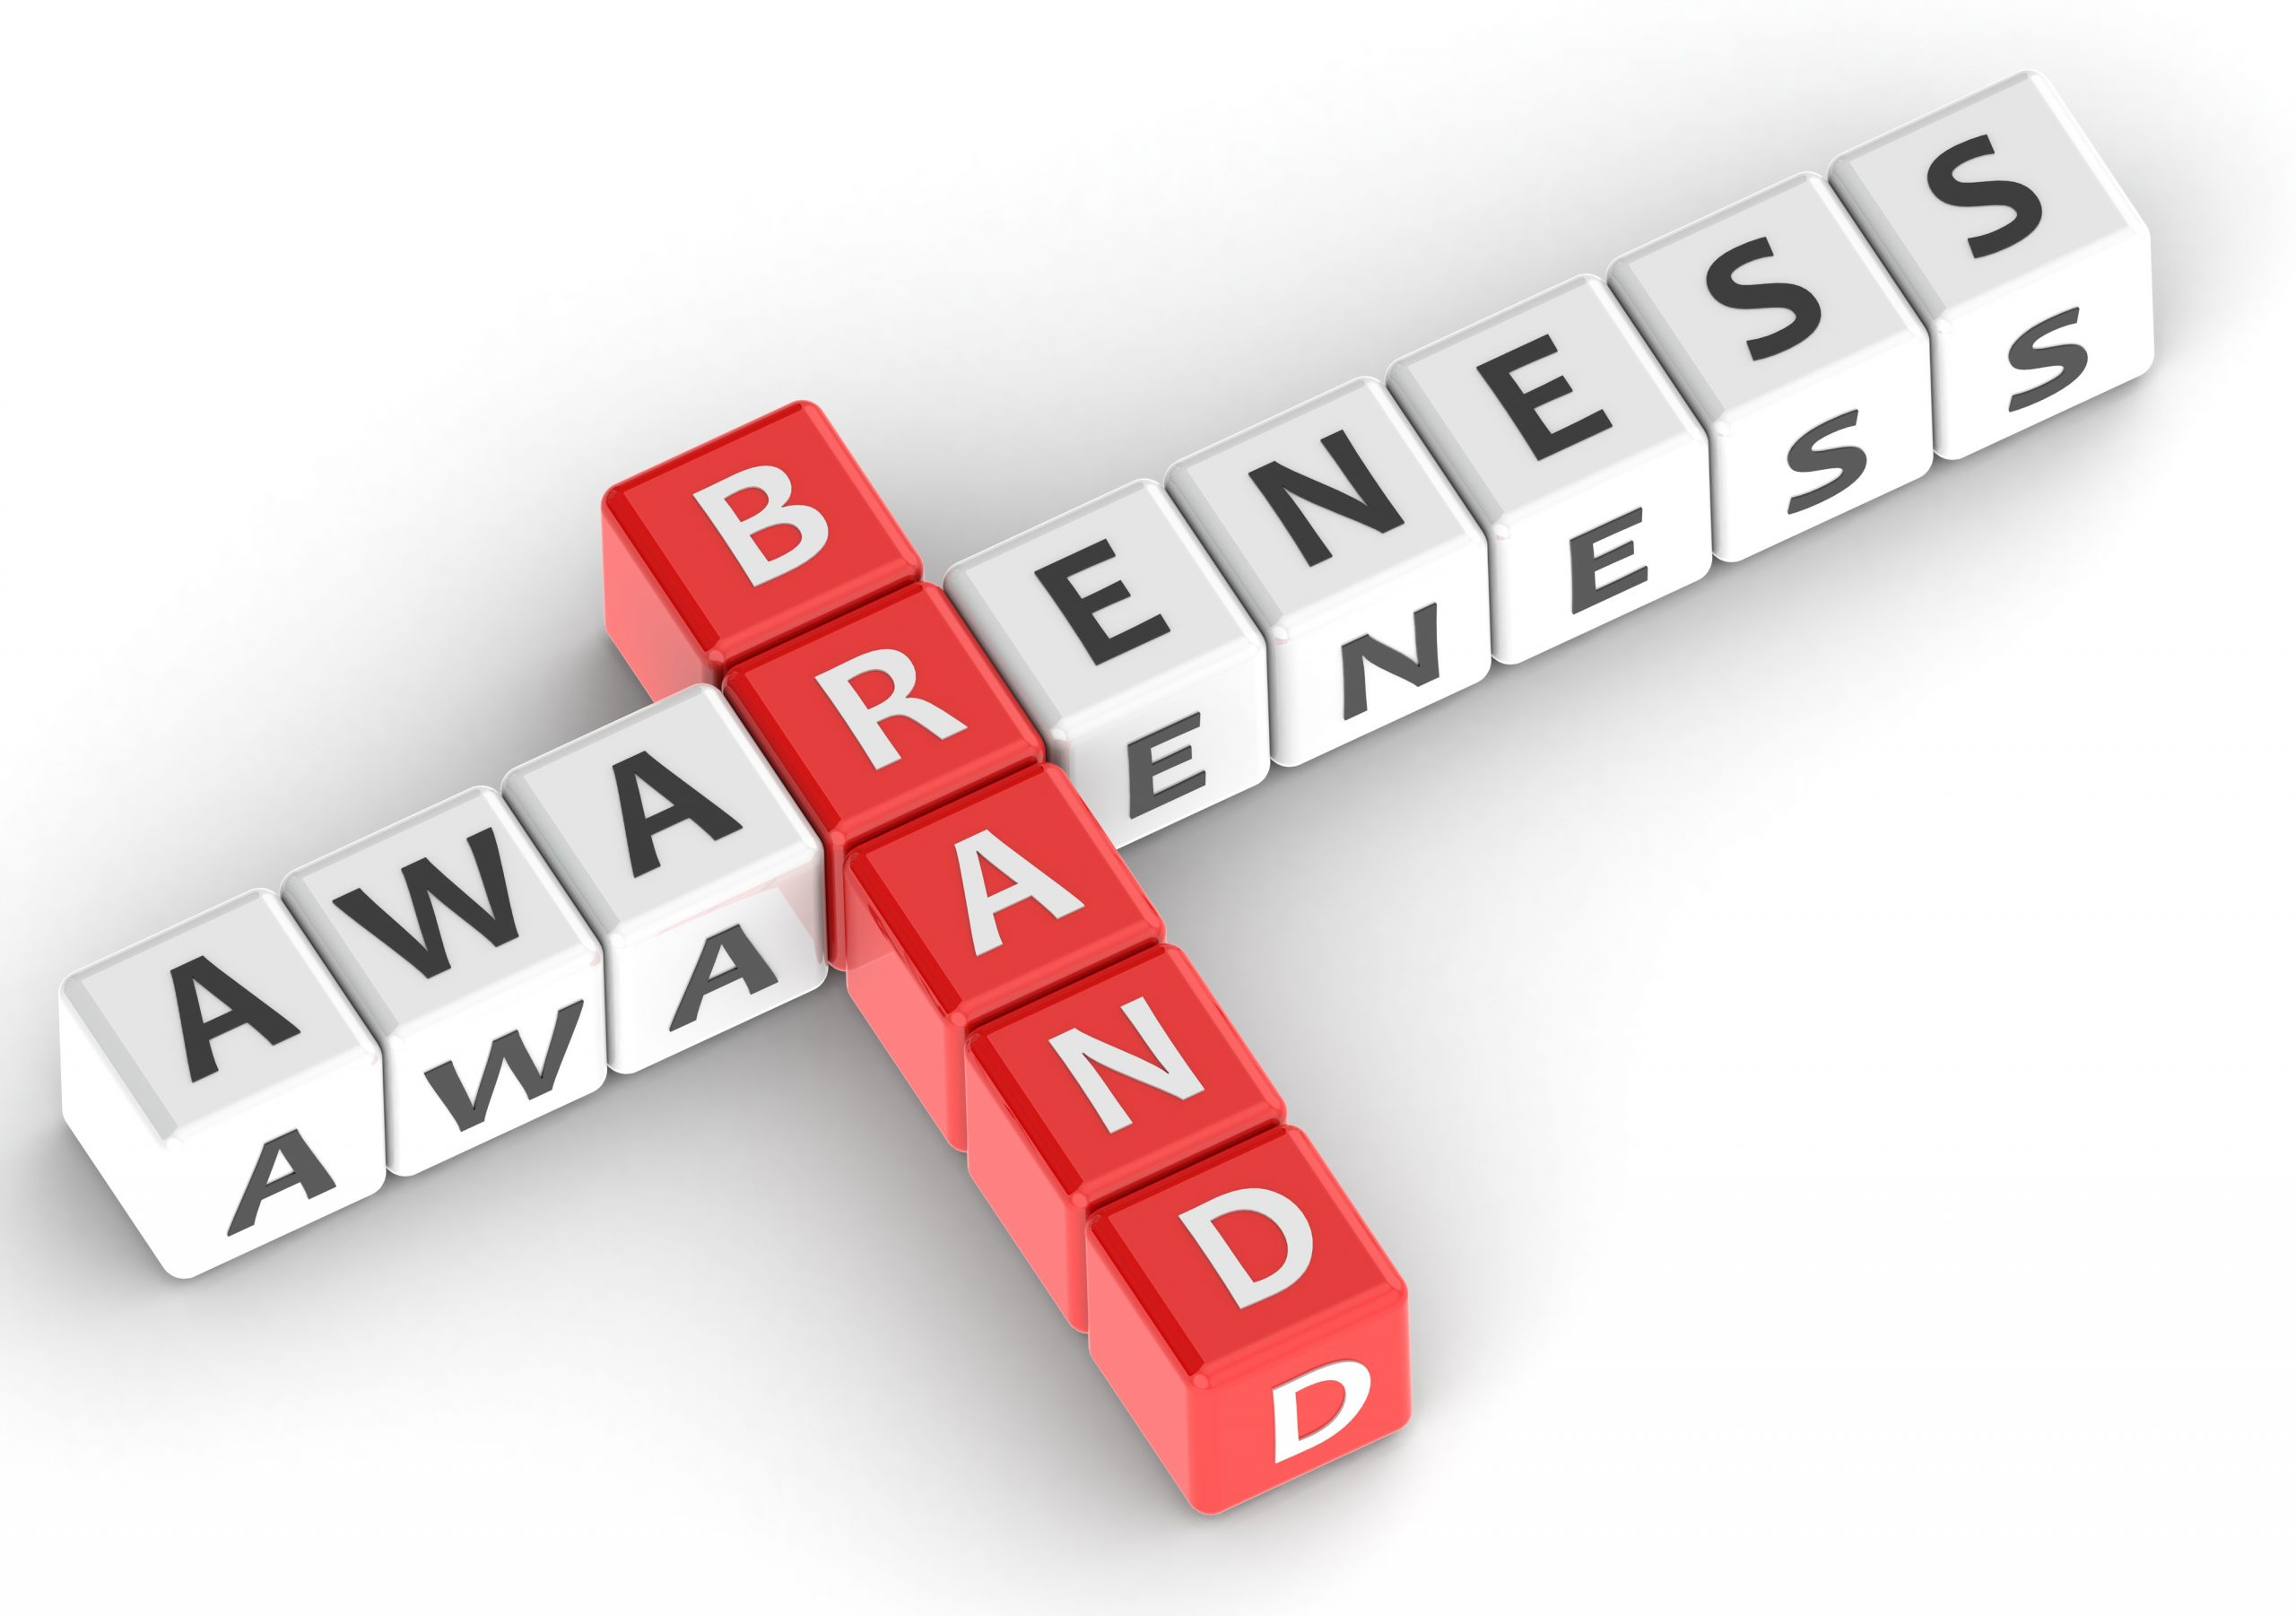 8 Ways Promotional Campaigns Can Improve Brand Awareness